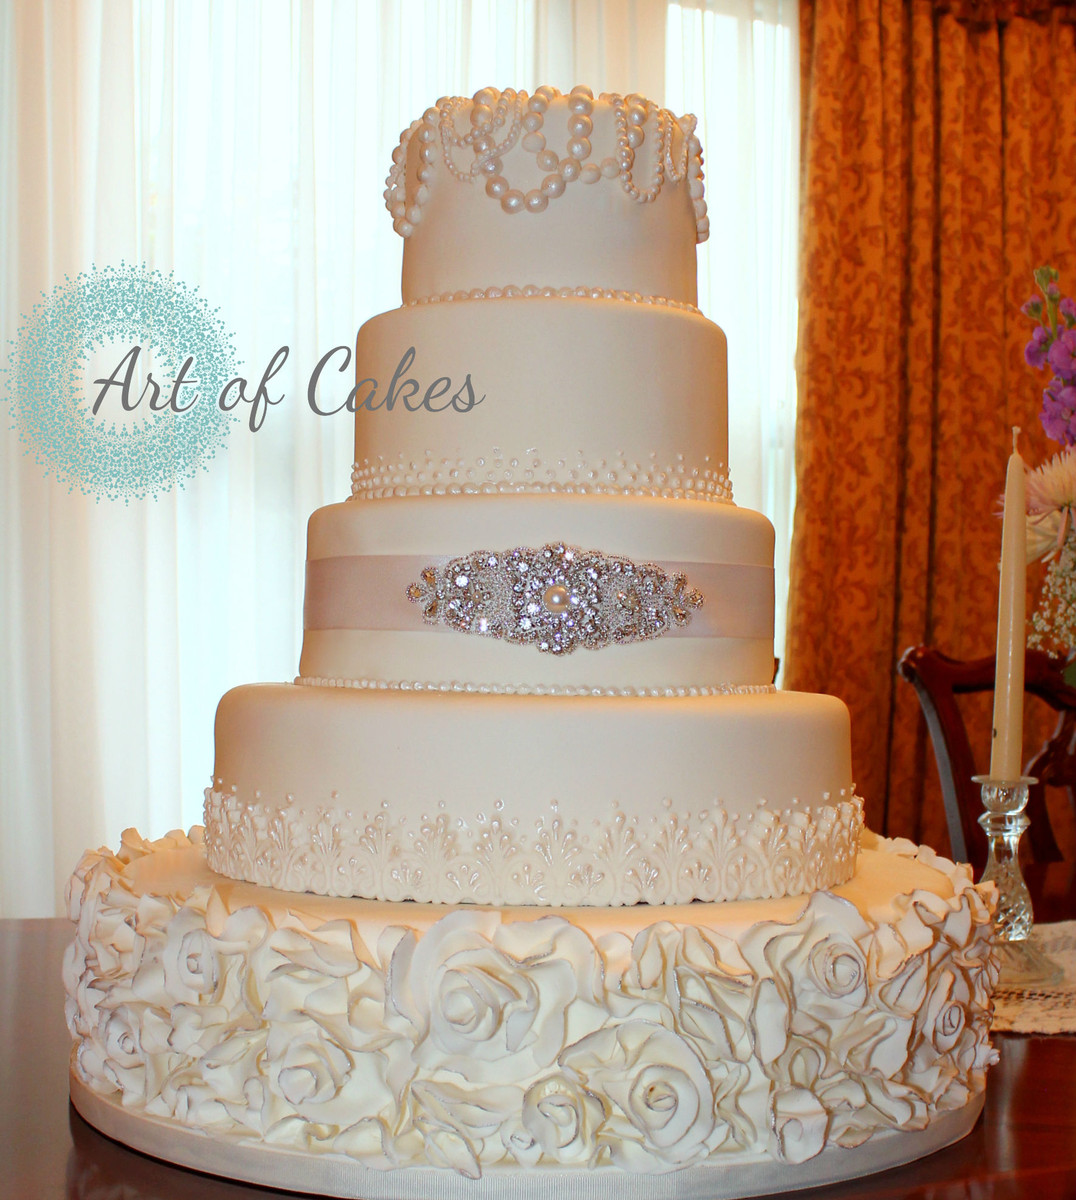 Cake Art In Elizabethton Tn : Art of Cakes Photos, Wedding Cake Pictures, Tennessee ...